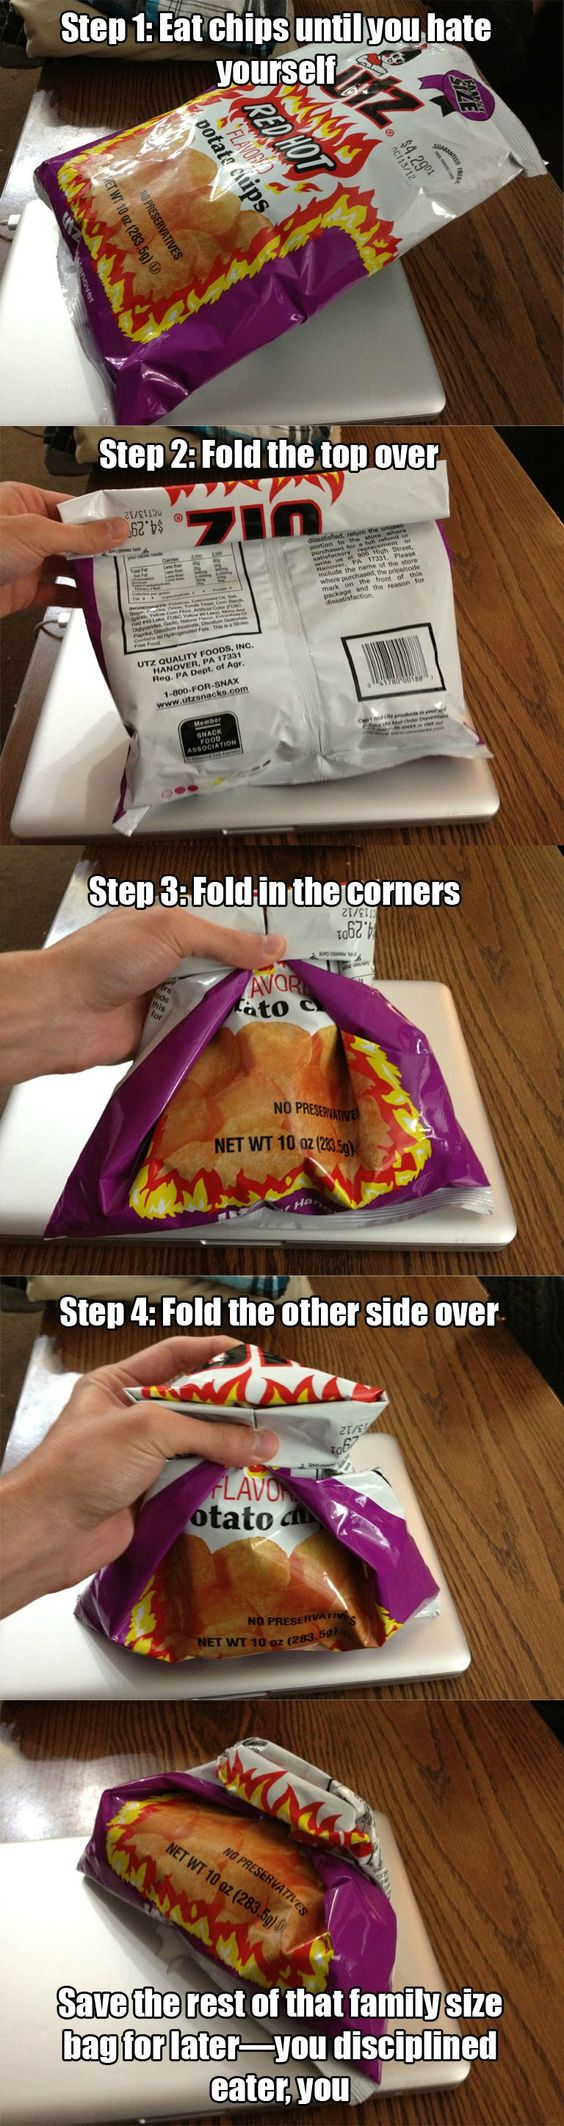 How to close chip bags without clips.